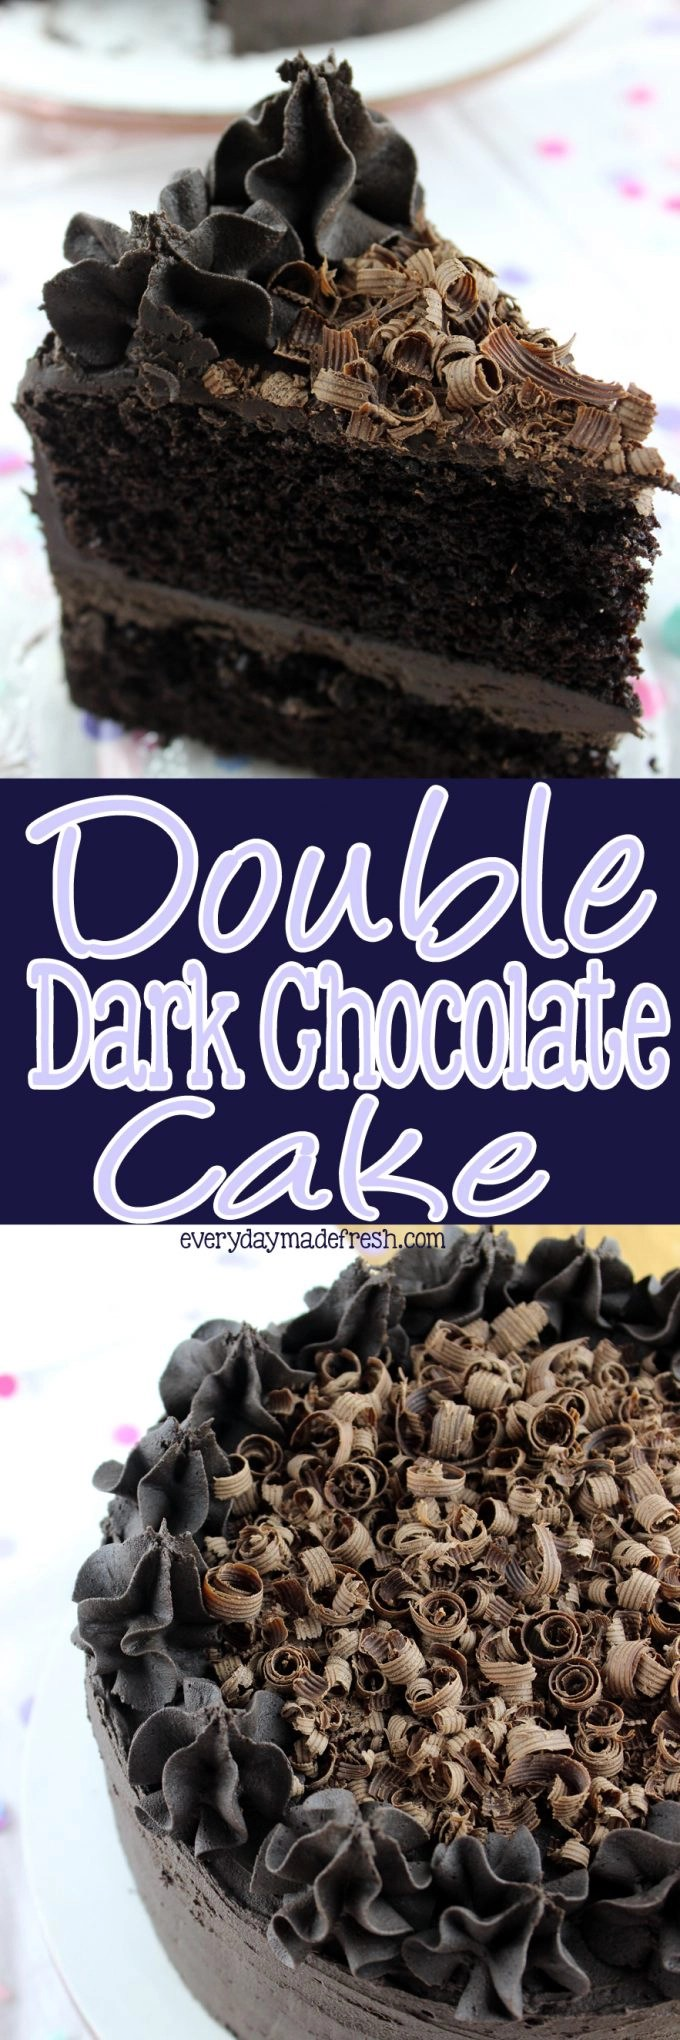 Chocolate cake is my favorite, and I set out to make the perfect chocolate cake by using only dark chocolate. This Double Dark Chocolate Cake is only for the serious chocolate fans. Not too sweet and very addicting! You've been warned! | EverydayMadeFresh.com